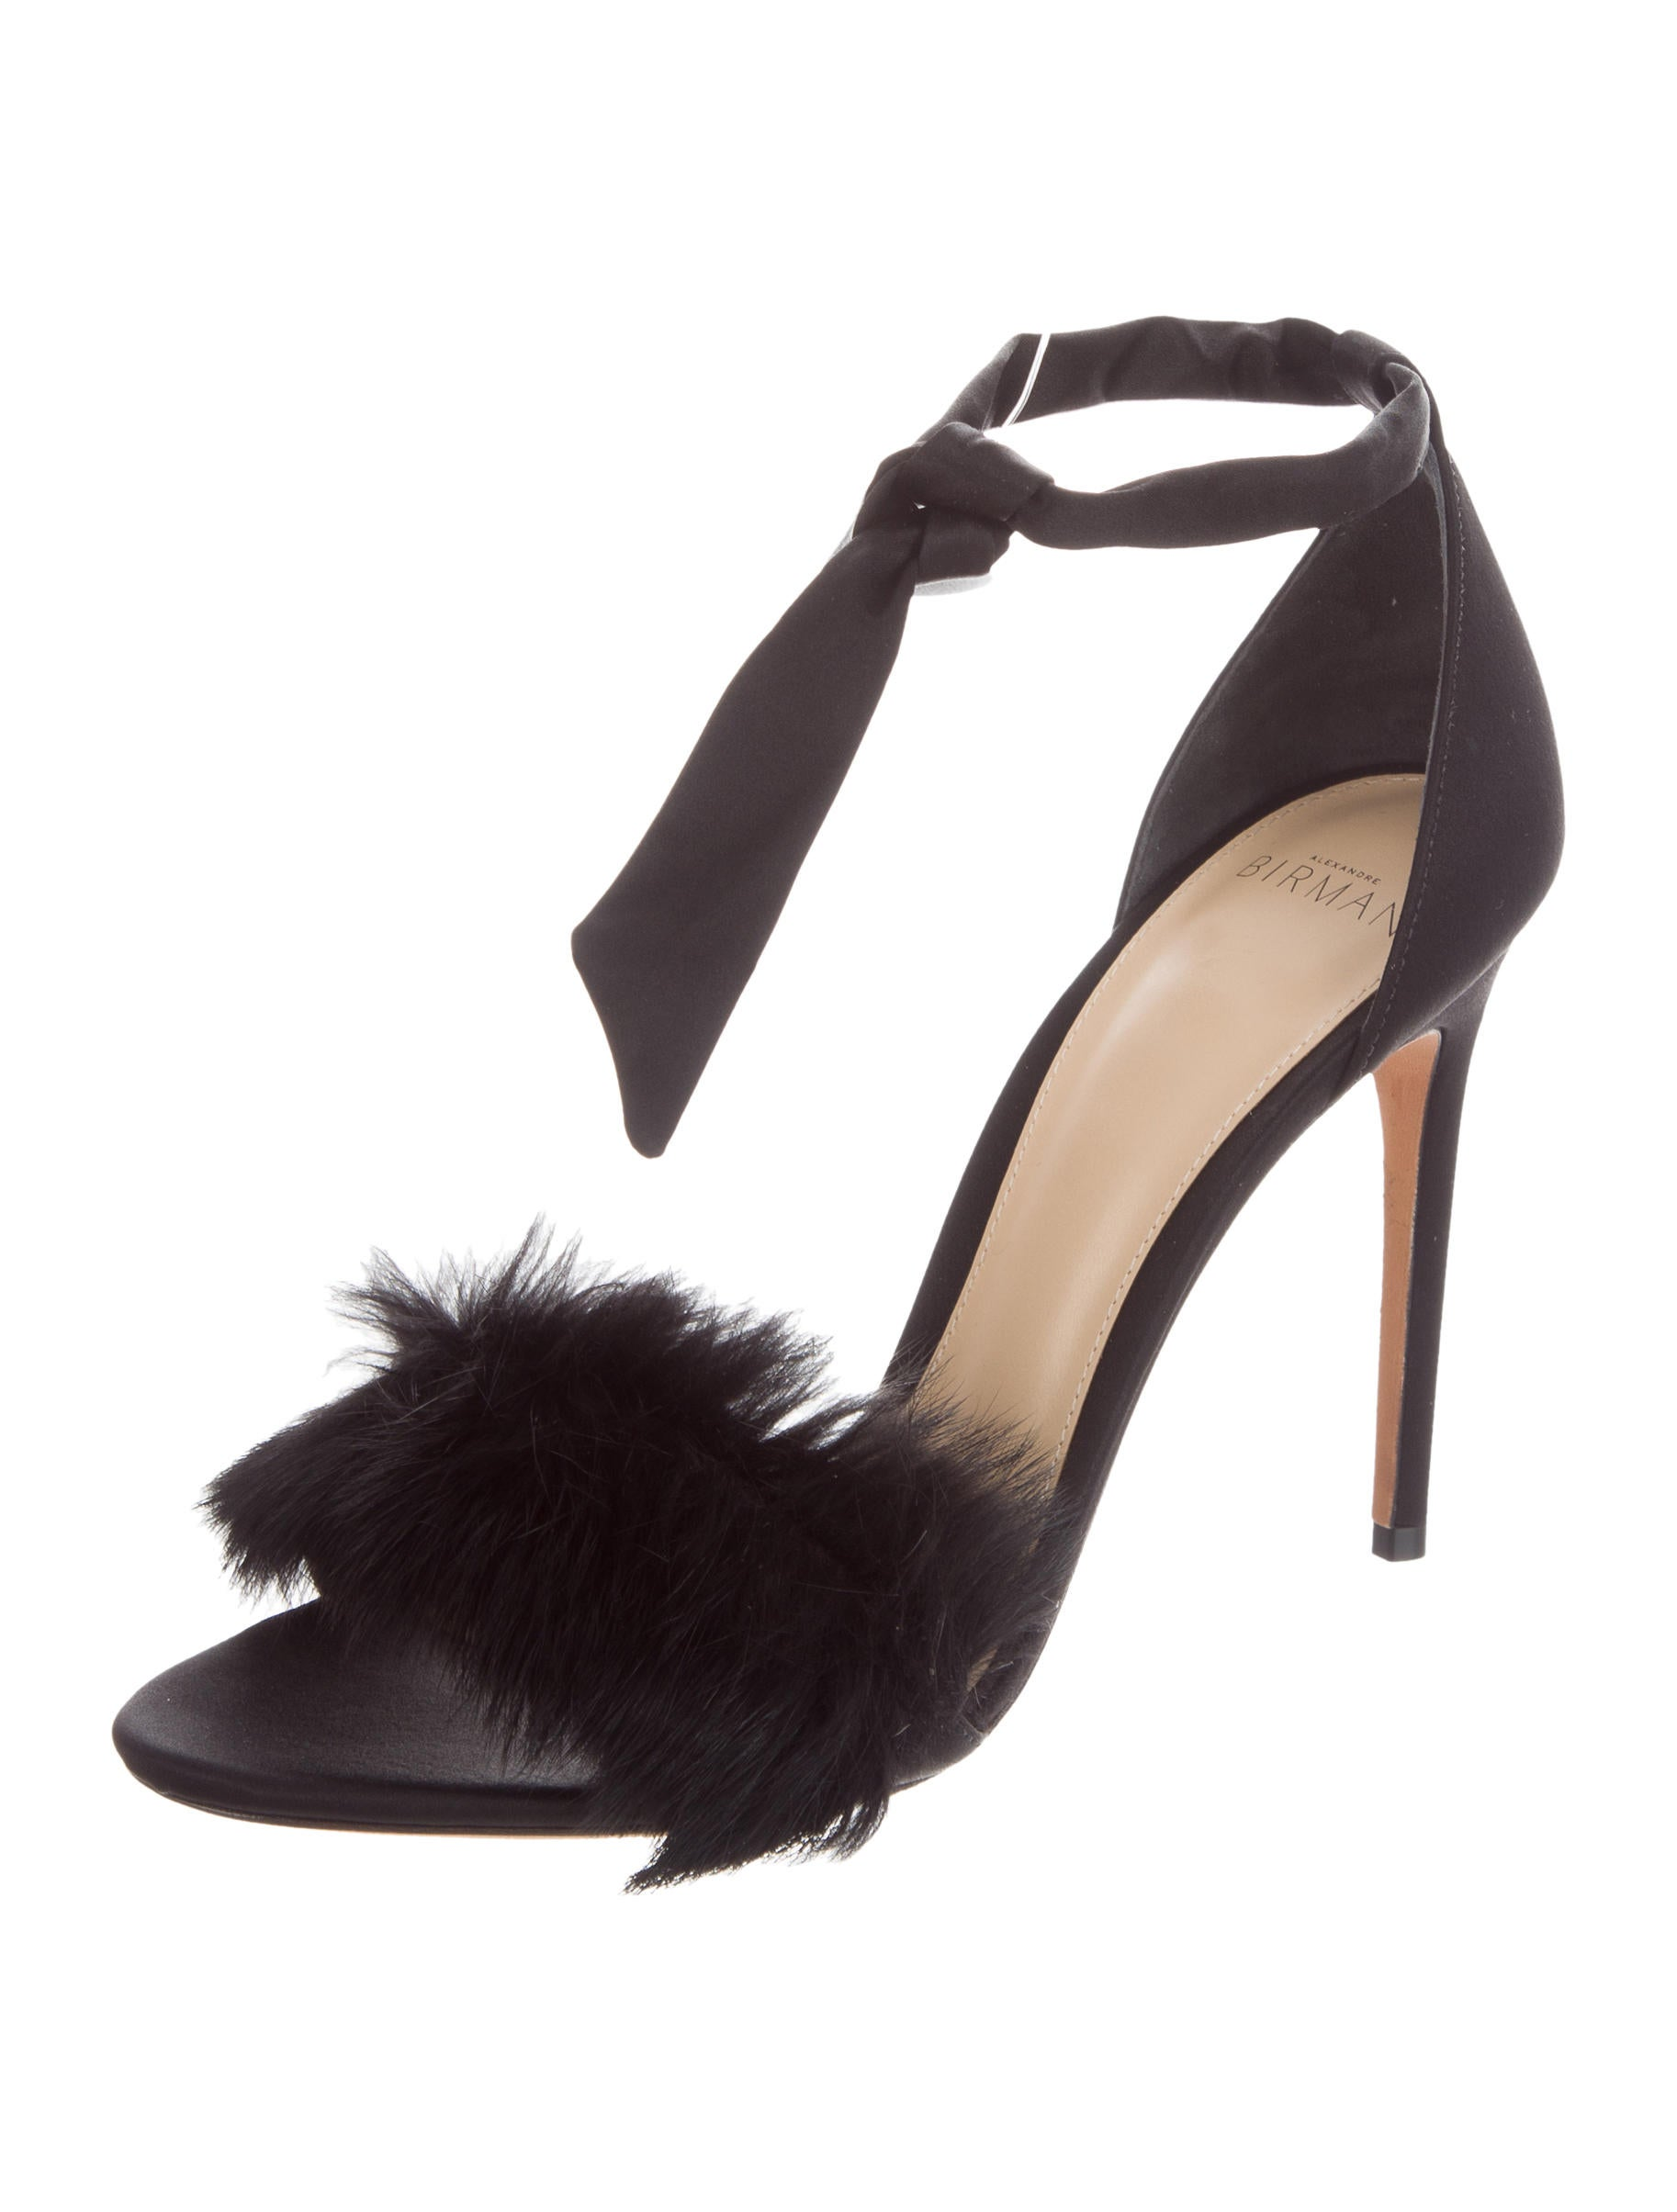 Alexandre Birman 2018 Fur-Accented Sandals free shipping pay with visa clearance wholesale price sale huge surprise clearance extremely RSKfBl4Usd